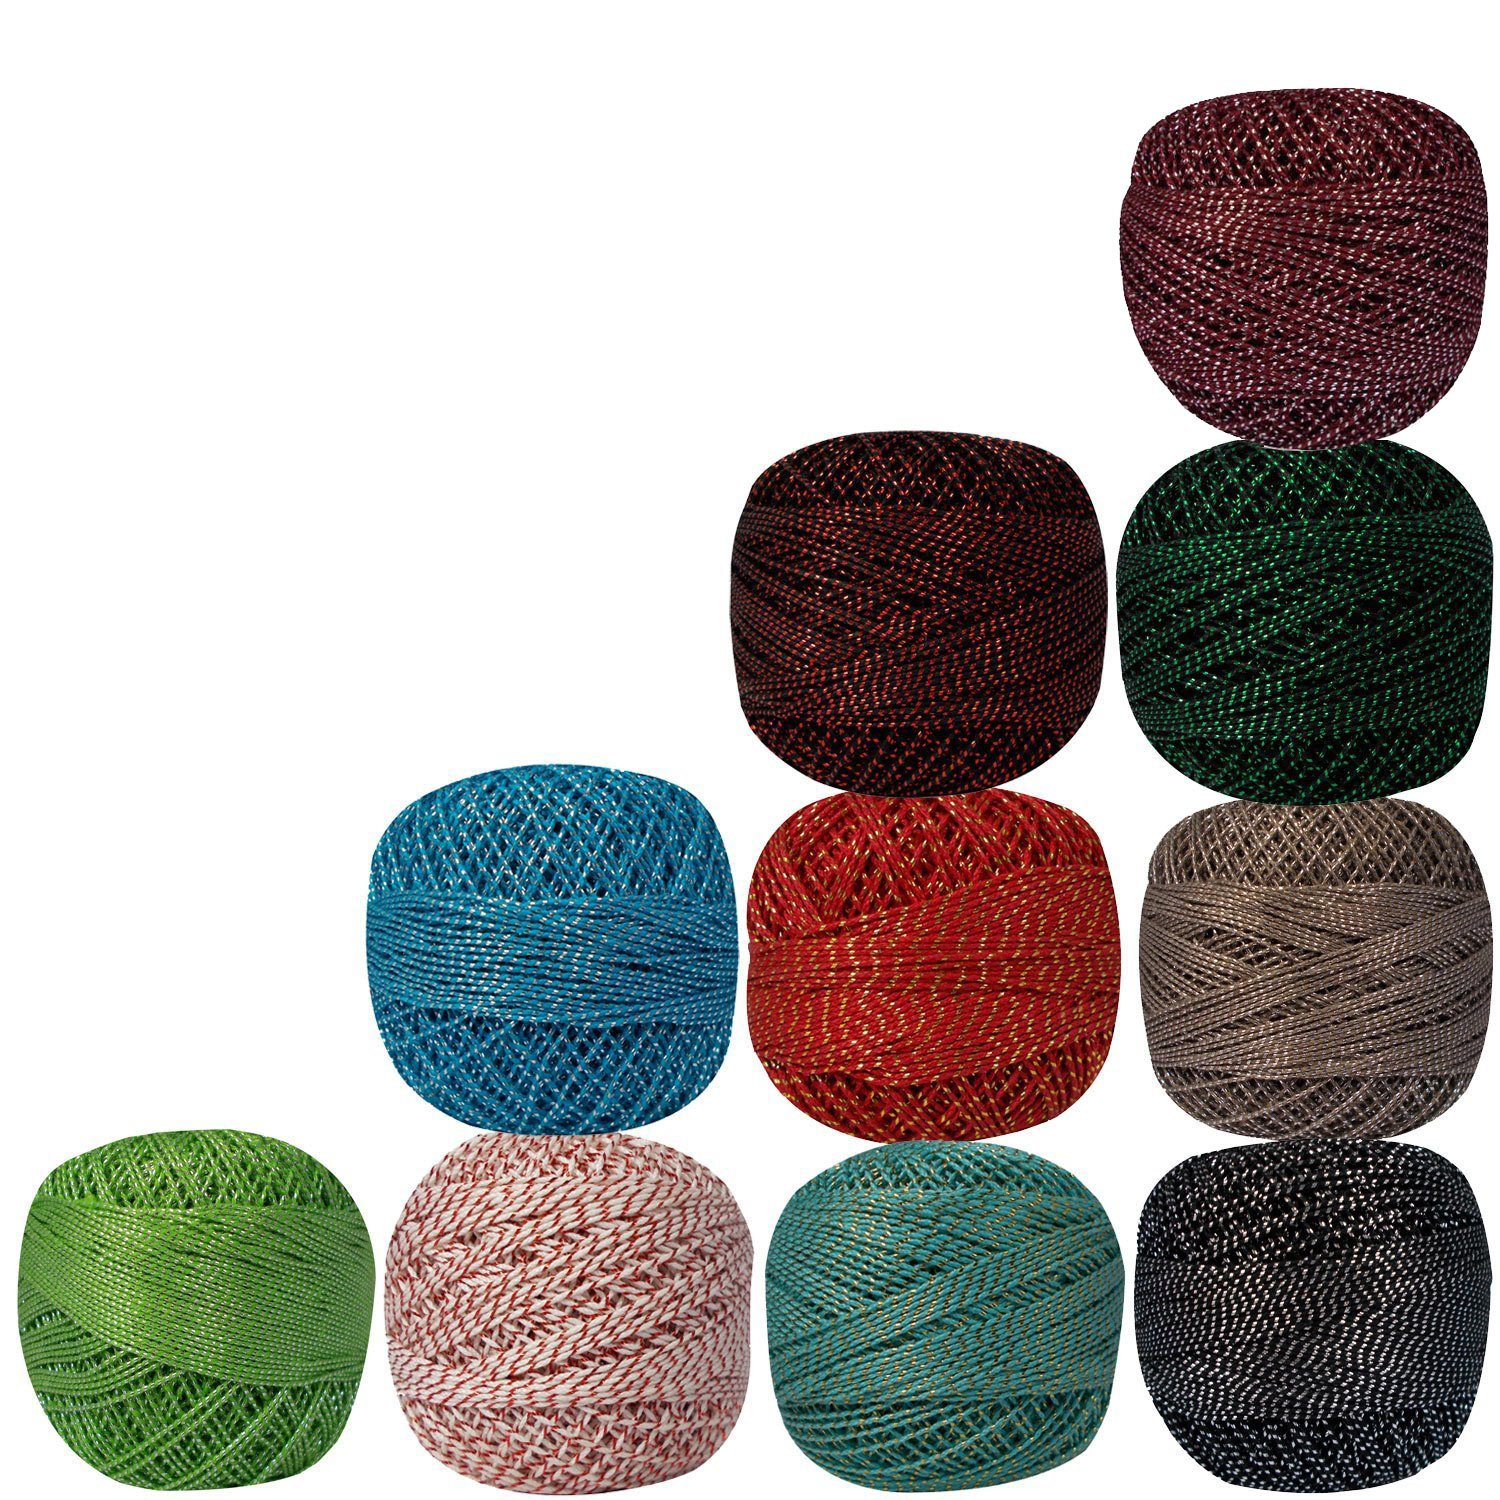 Lot of 10 Pcs Variegated Metallic Cotton Crochet Thread Knitting Multicolor Yarn Tatting Doilies Assorted Skeins Lacey Craft by CraftyArt (Image #1)